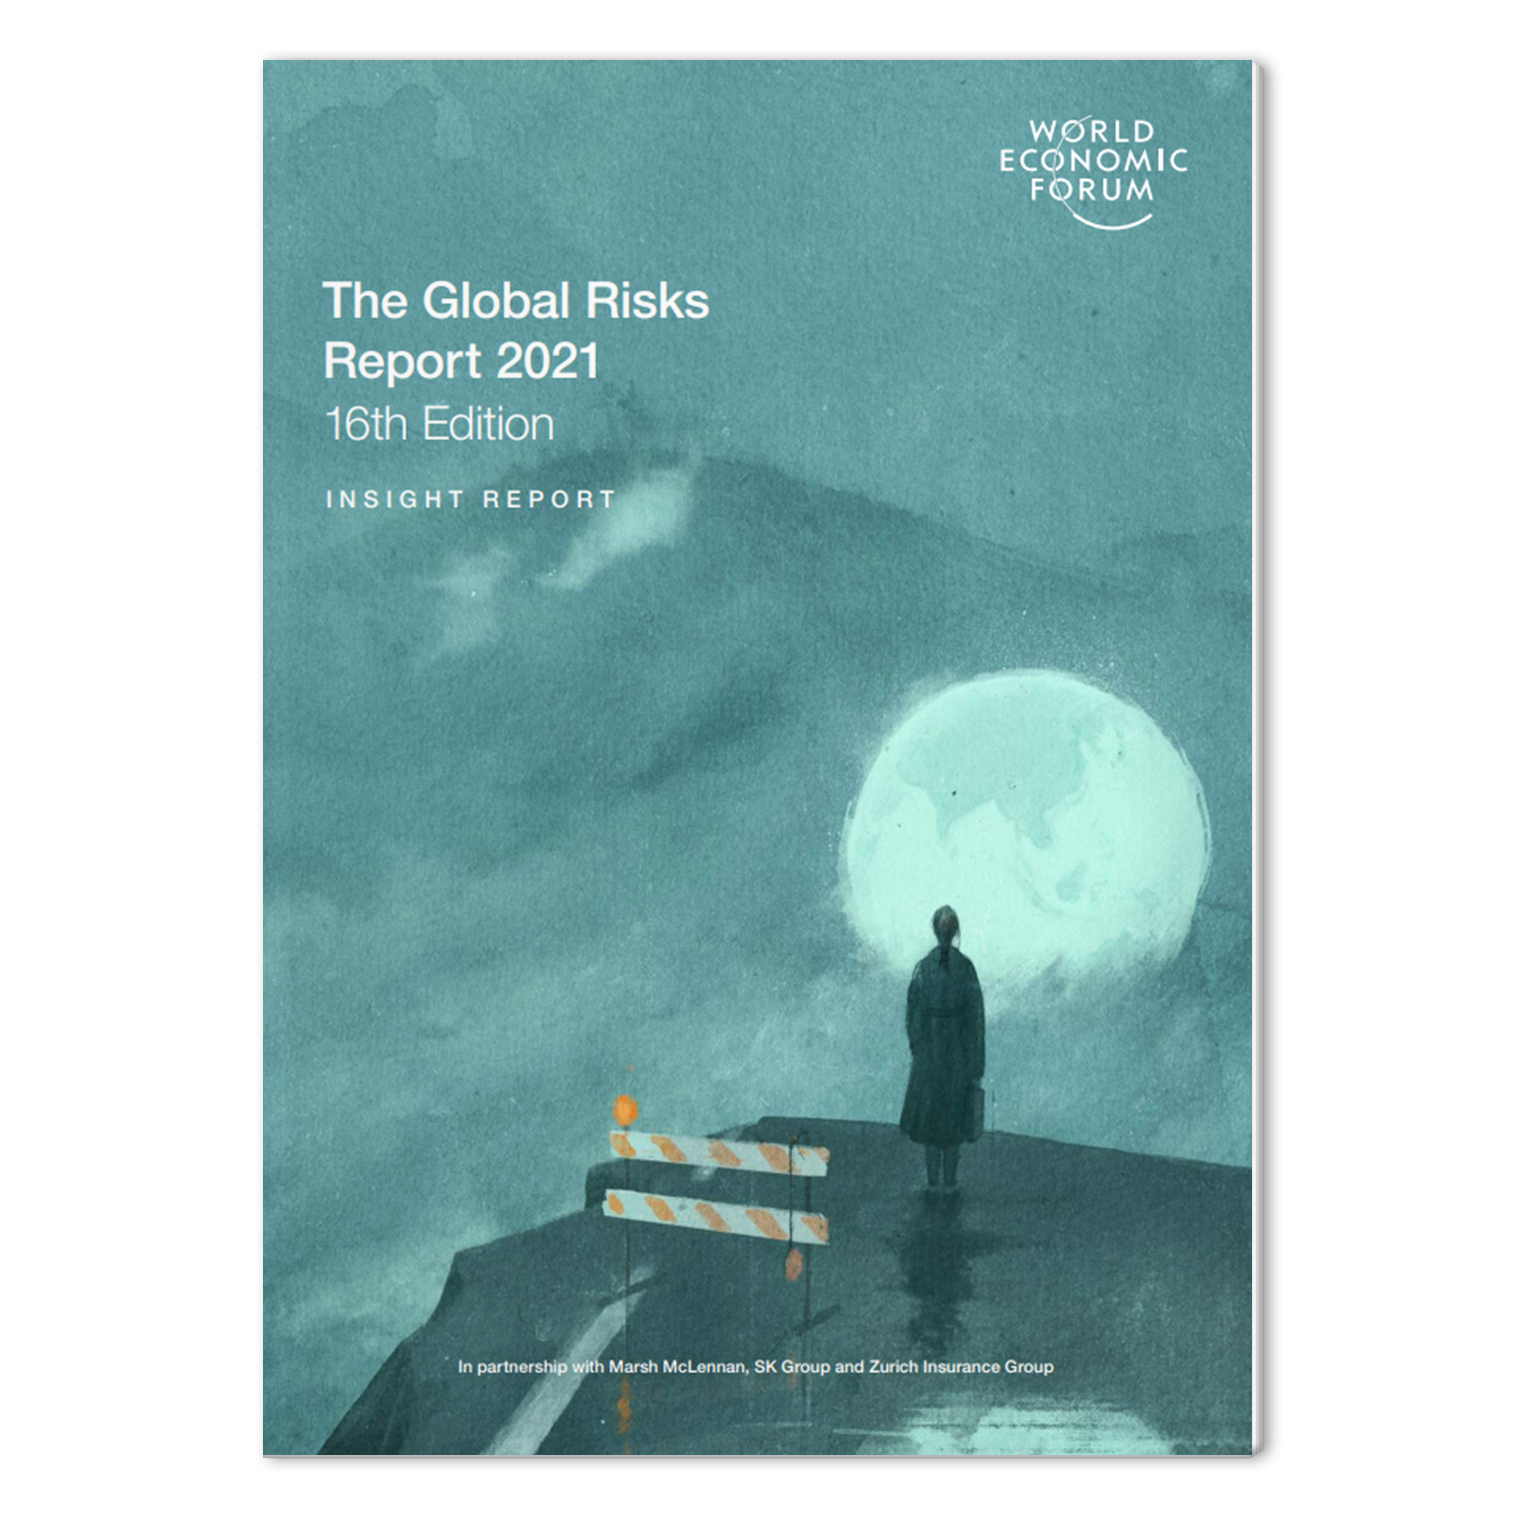 The Global Risks Report 2021 16th Edition